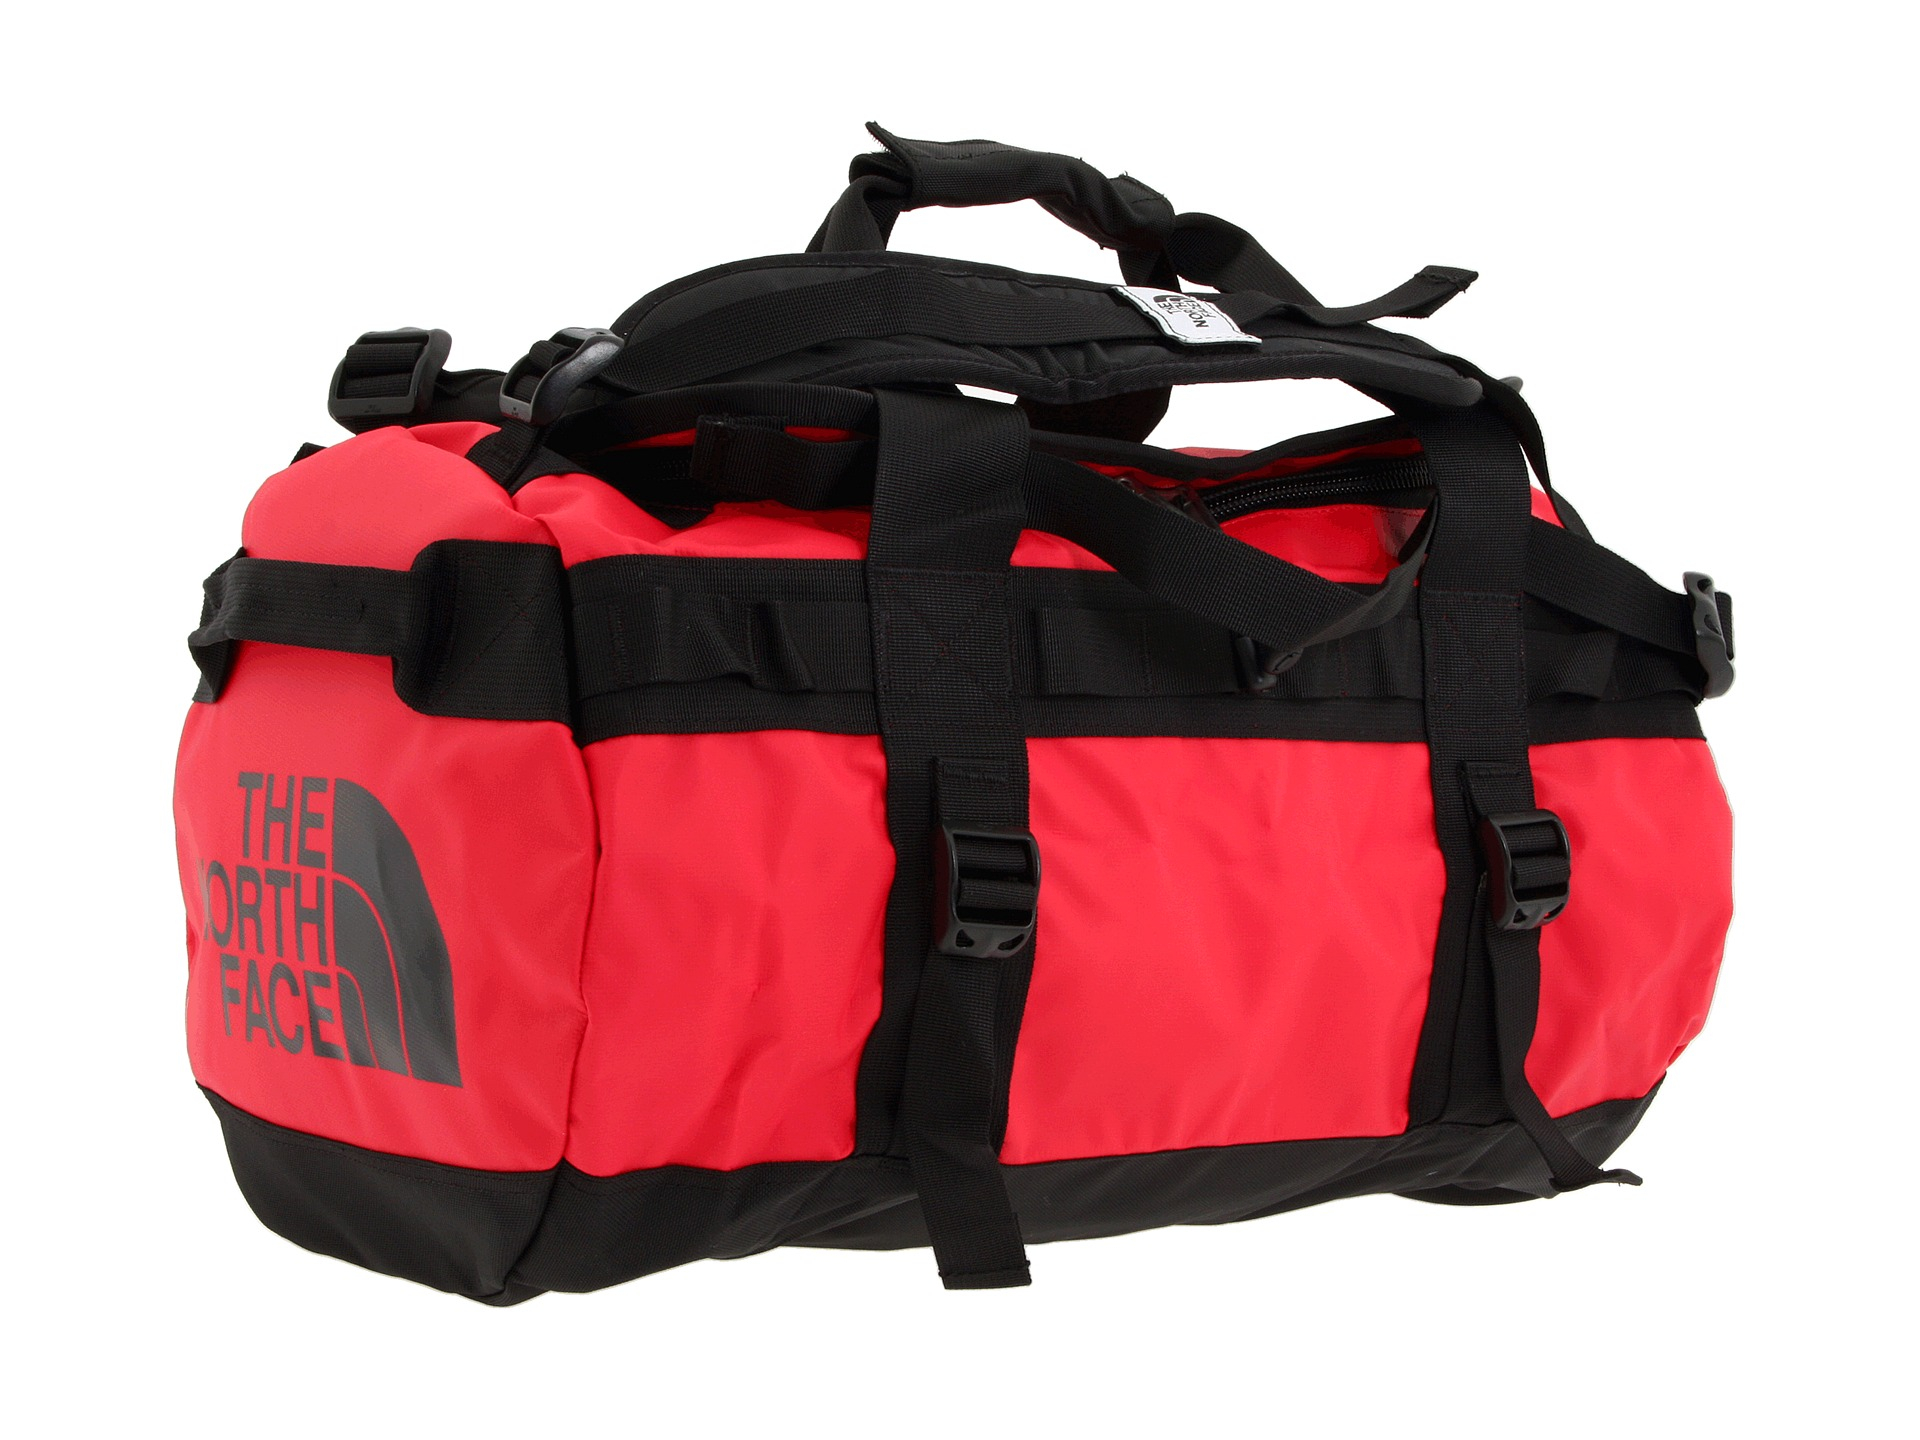 Lyst - The North Face Base Camp Duffel - Extra Small in Red bf4ecaa97